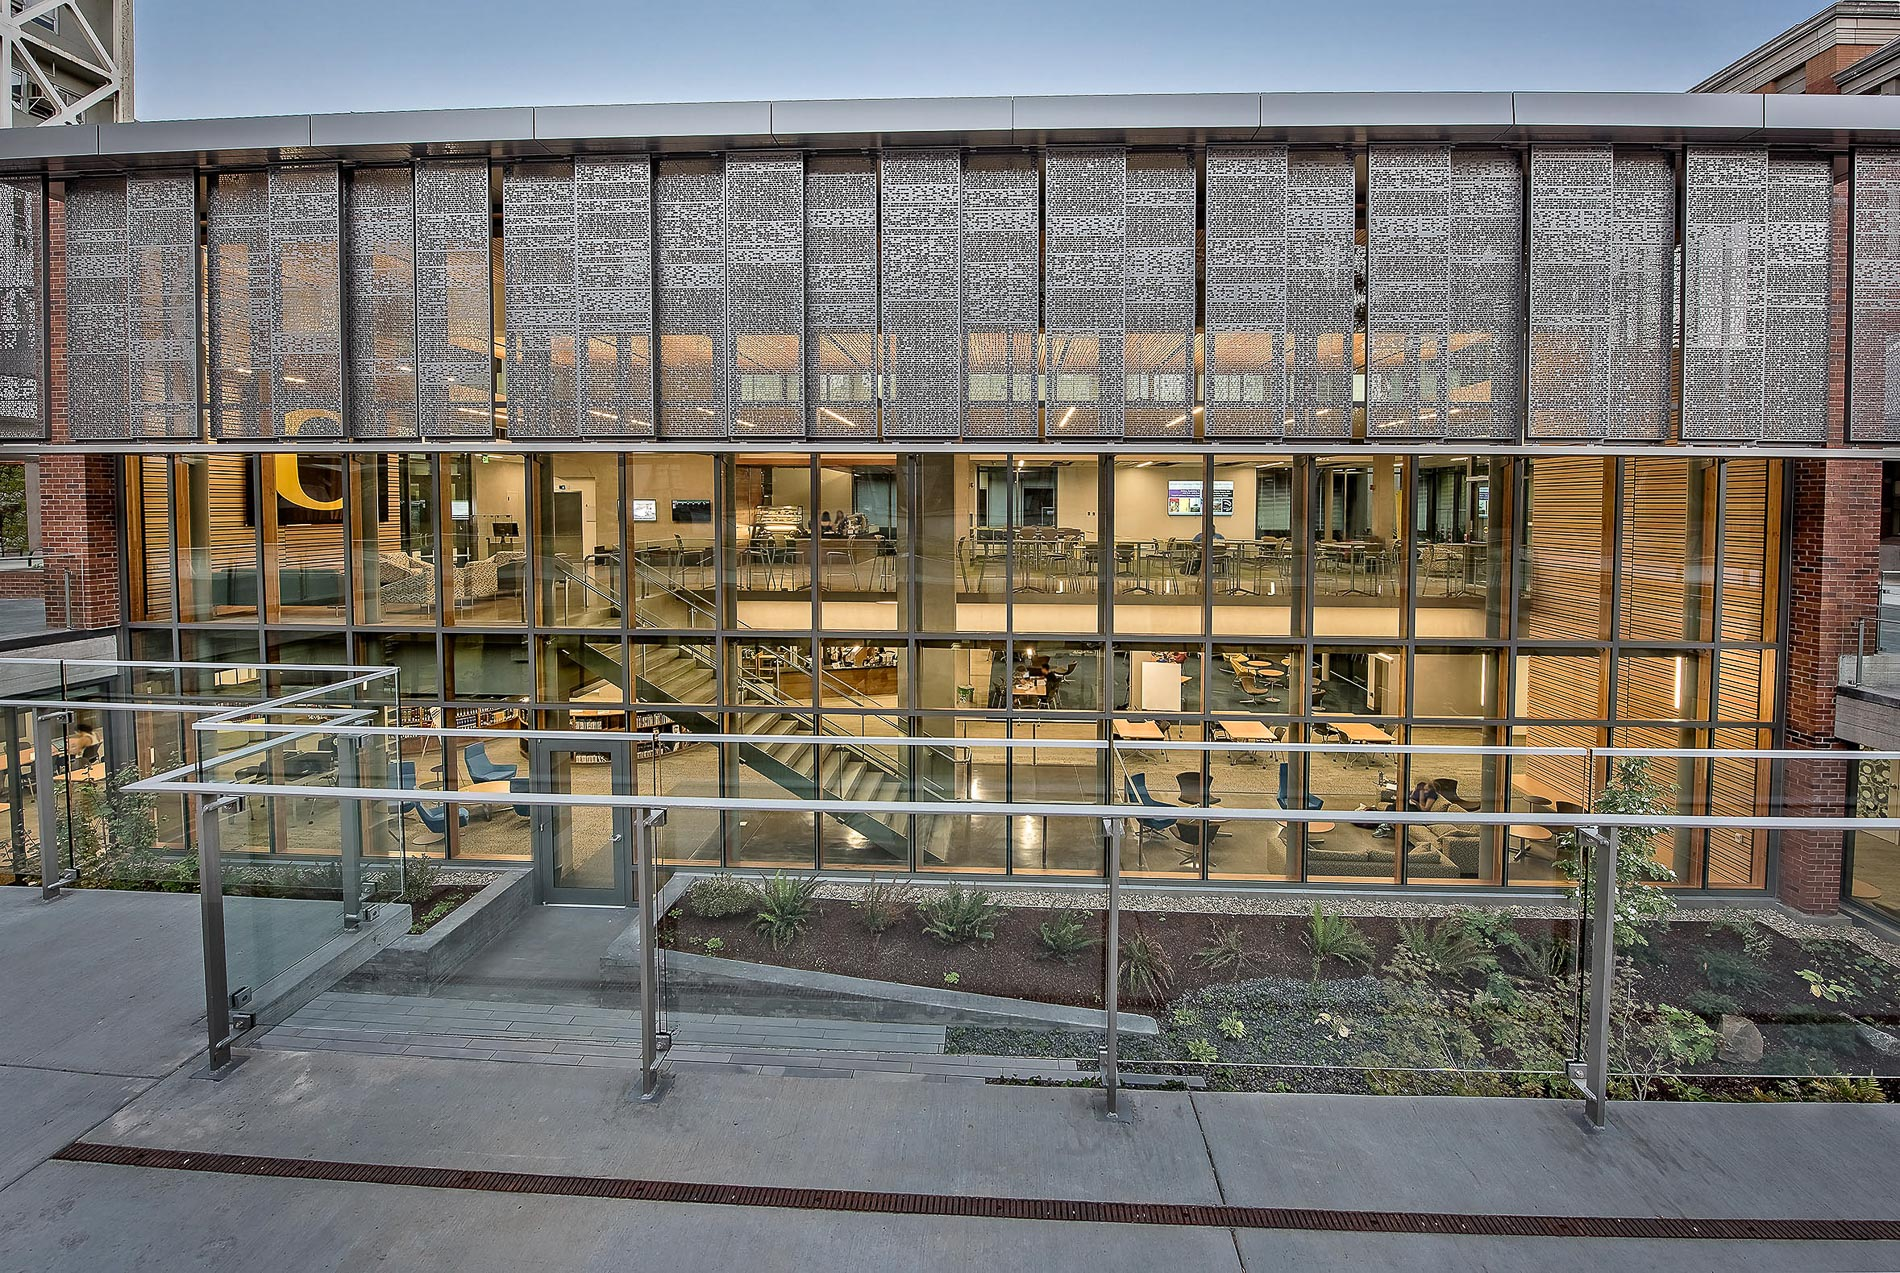 Allen Price Commons, University of Oregon / 1